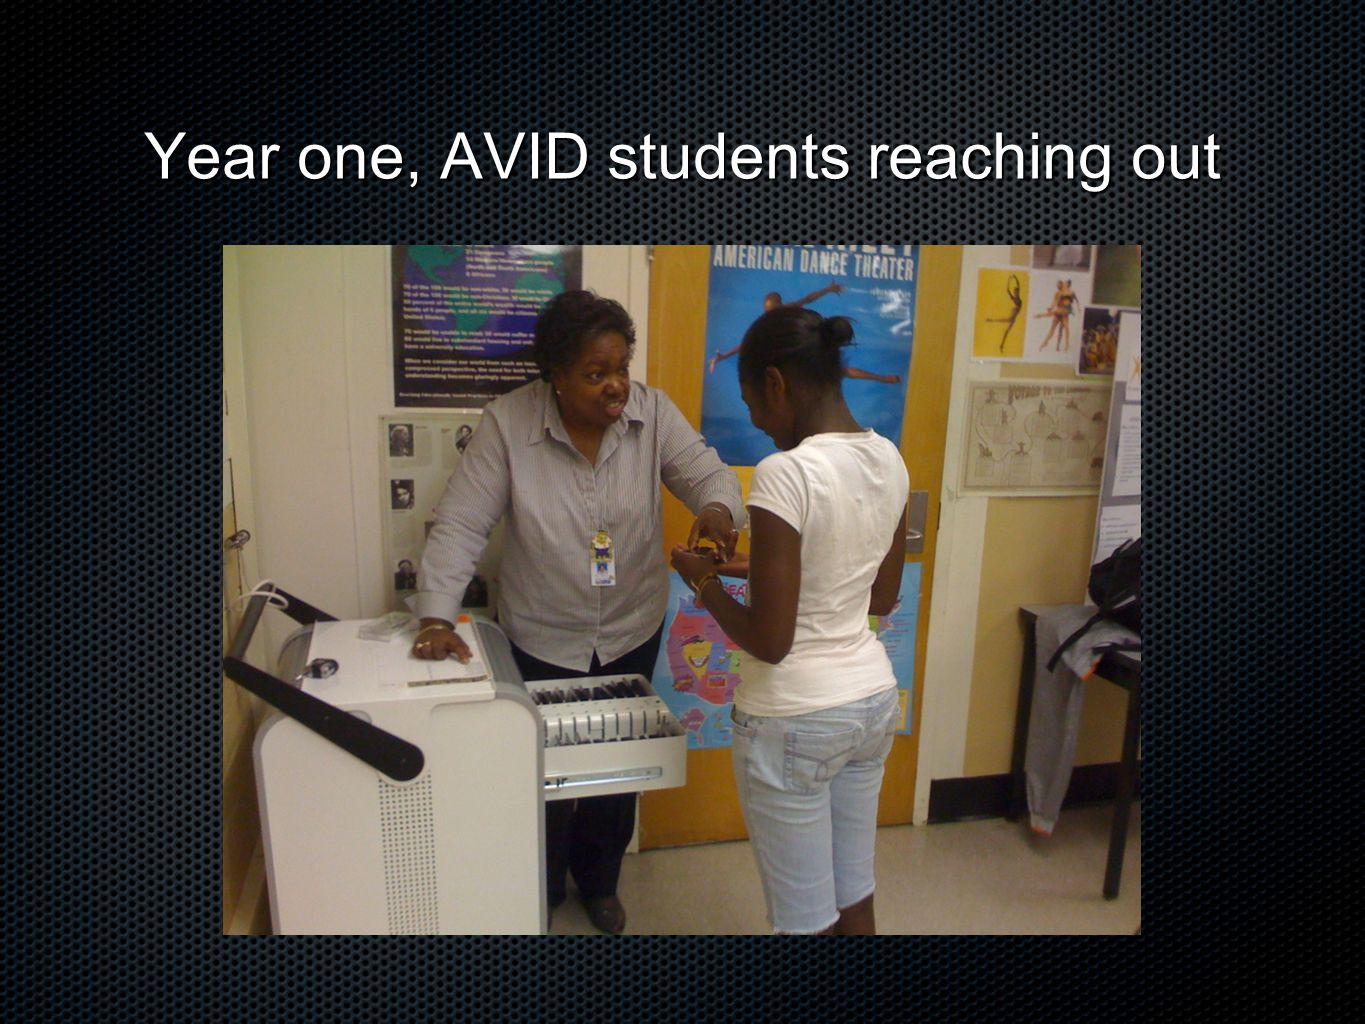 Year one, AVID students reaching out